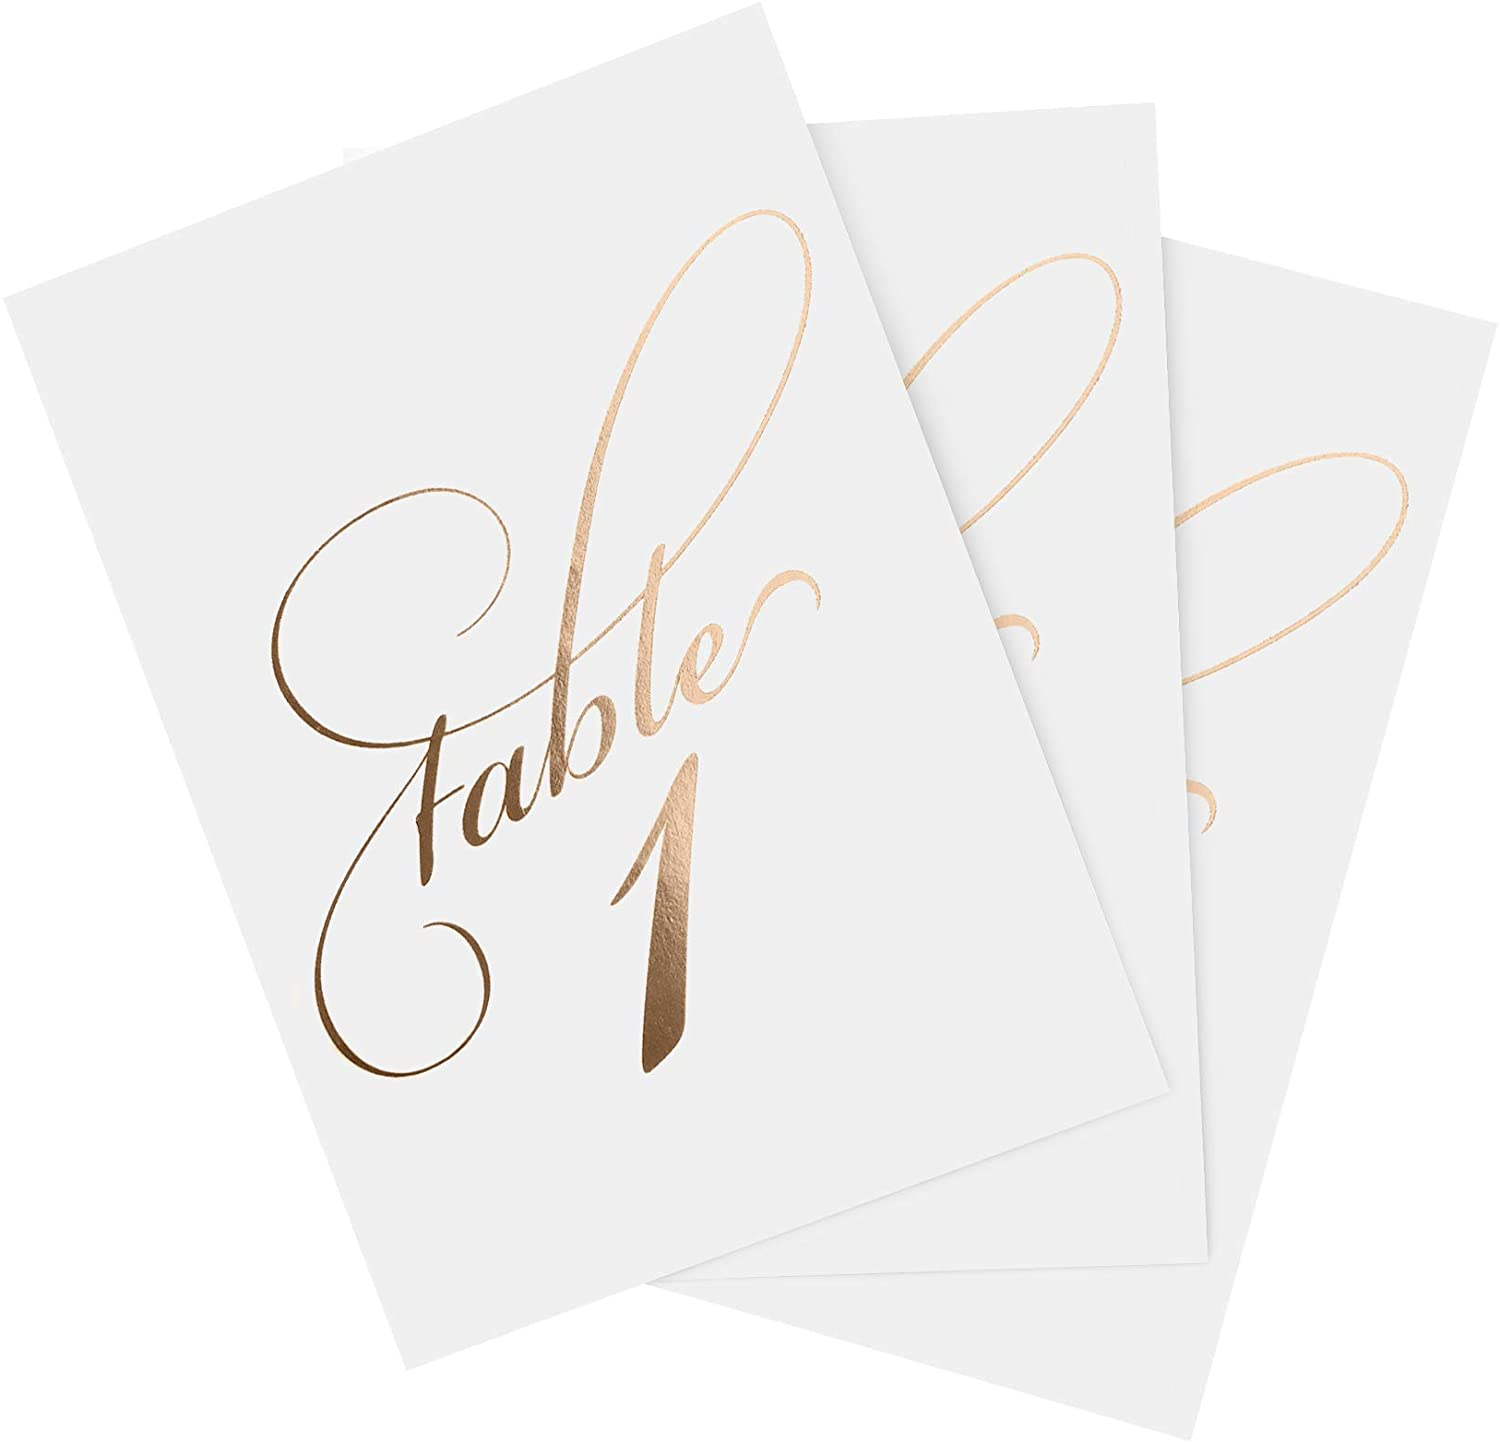 Bliss Collections Table Numbers with Head Table Card, Rose Gold Foil Stamped, Double Sided, 4x6 Calligraphy Design for Wedding, Reception, Party, Events, Celebrations - Made in The USA (1-40)